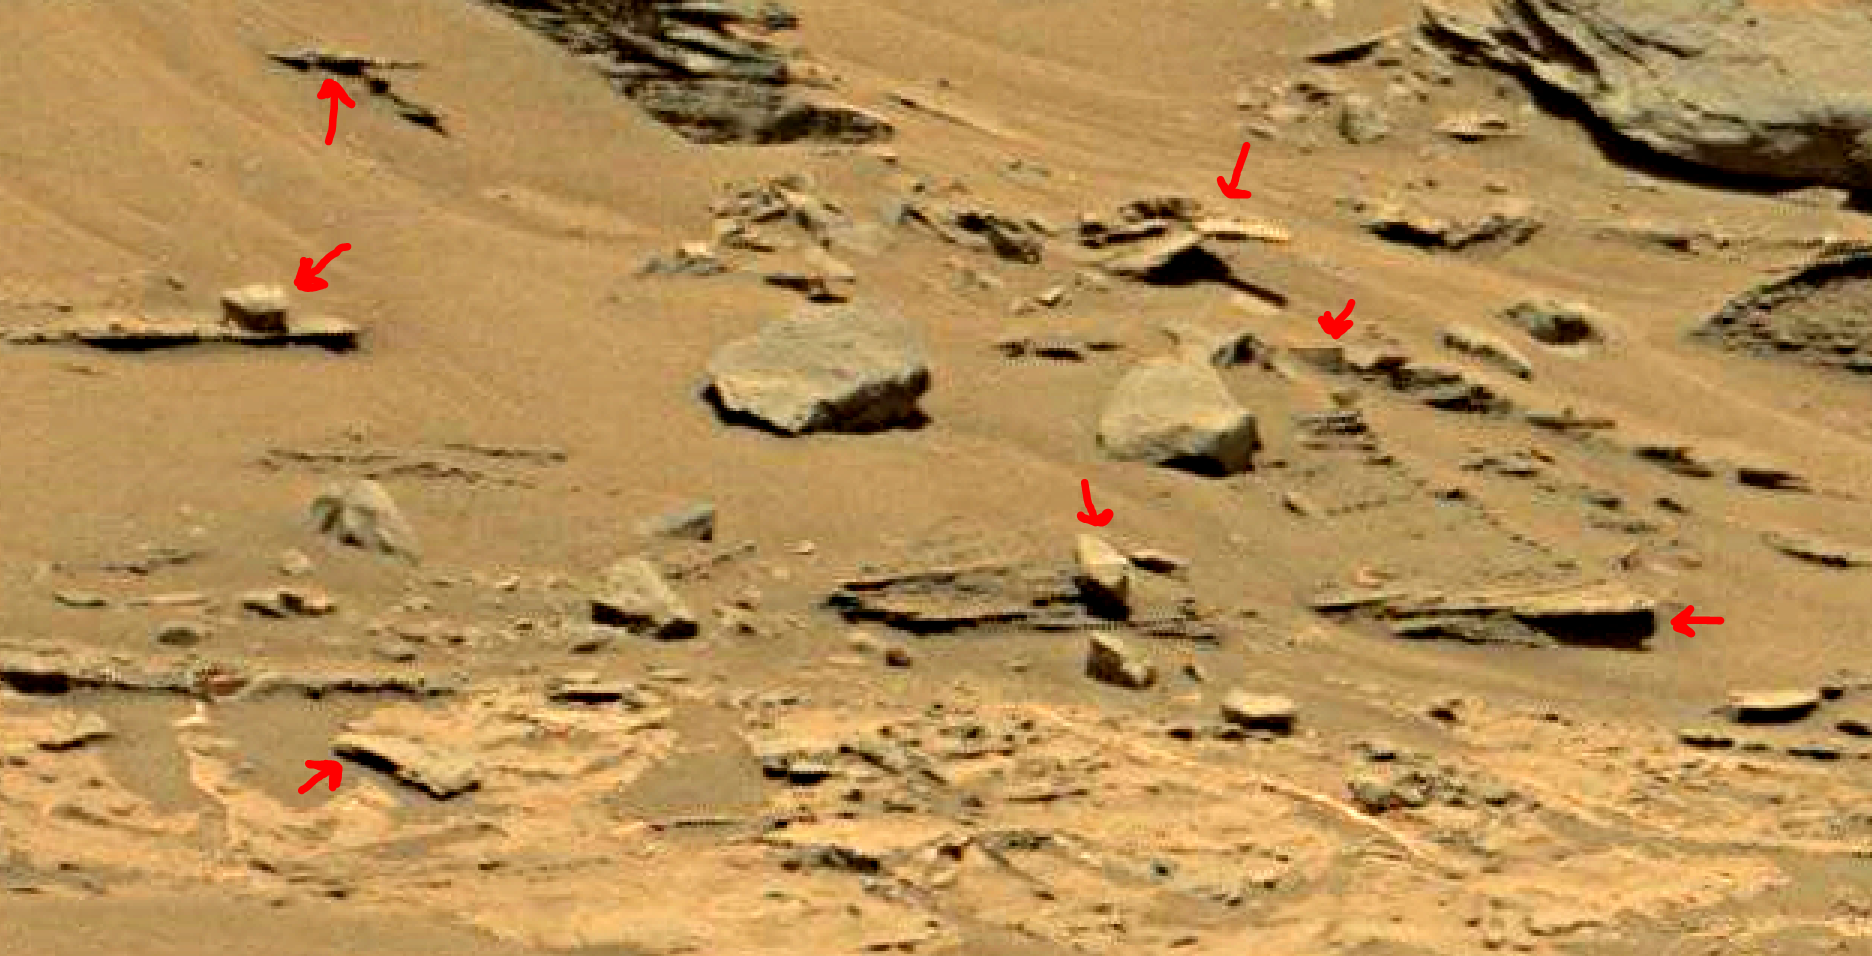 mars sol 1353 anomaly-artifacts 36a was life on mars